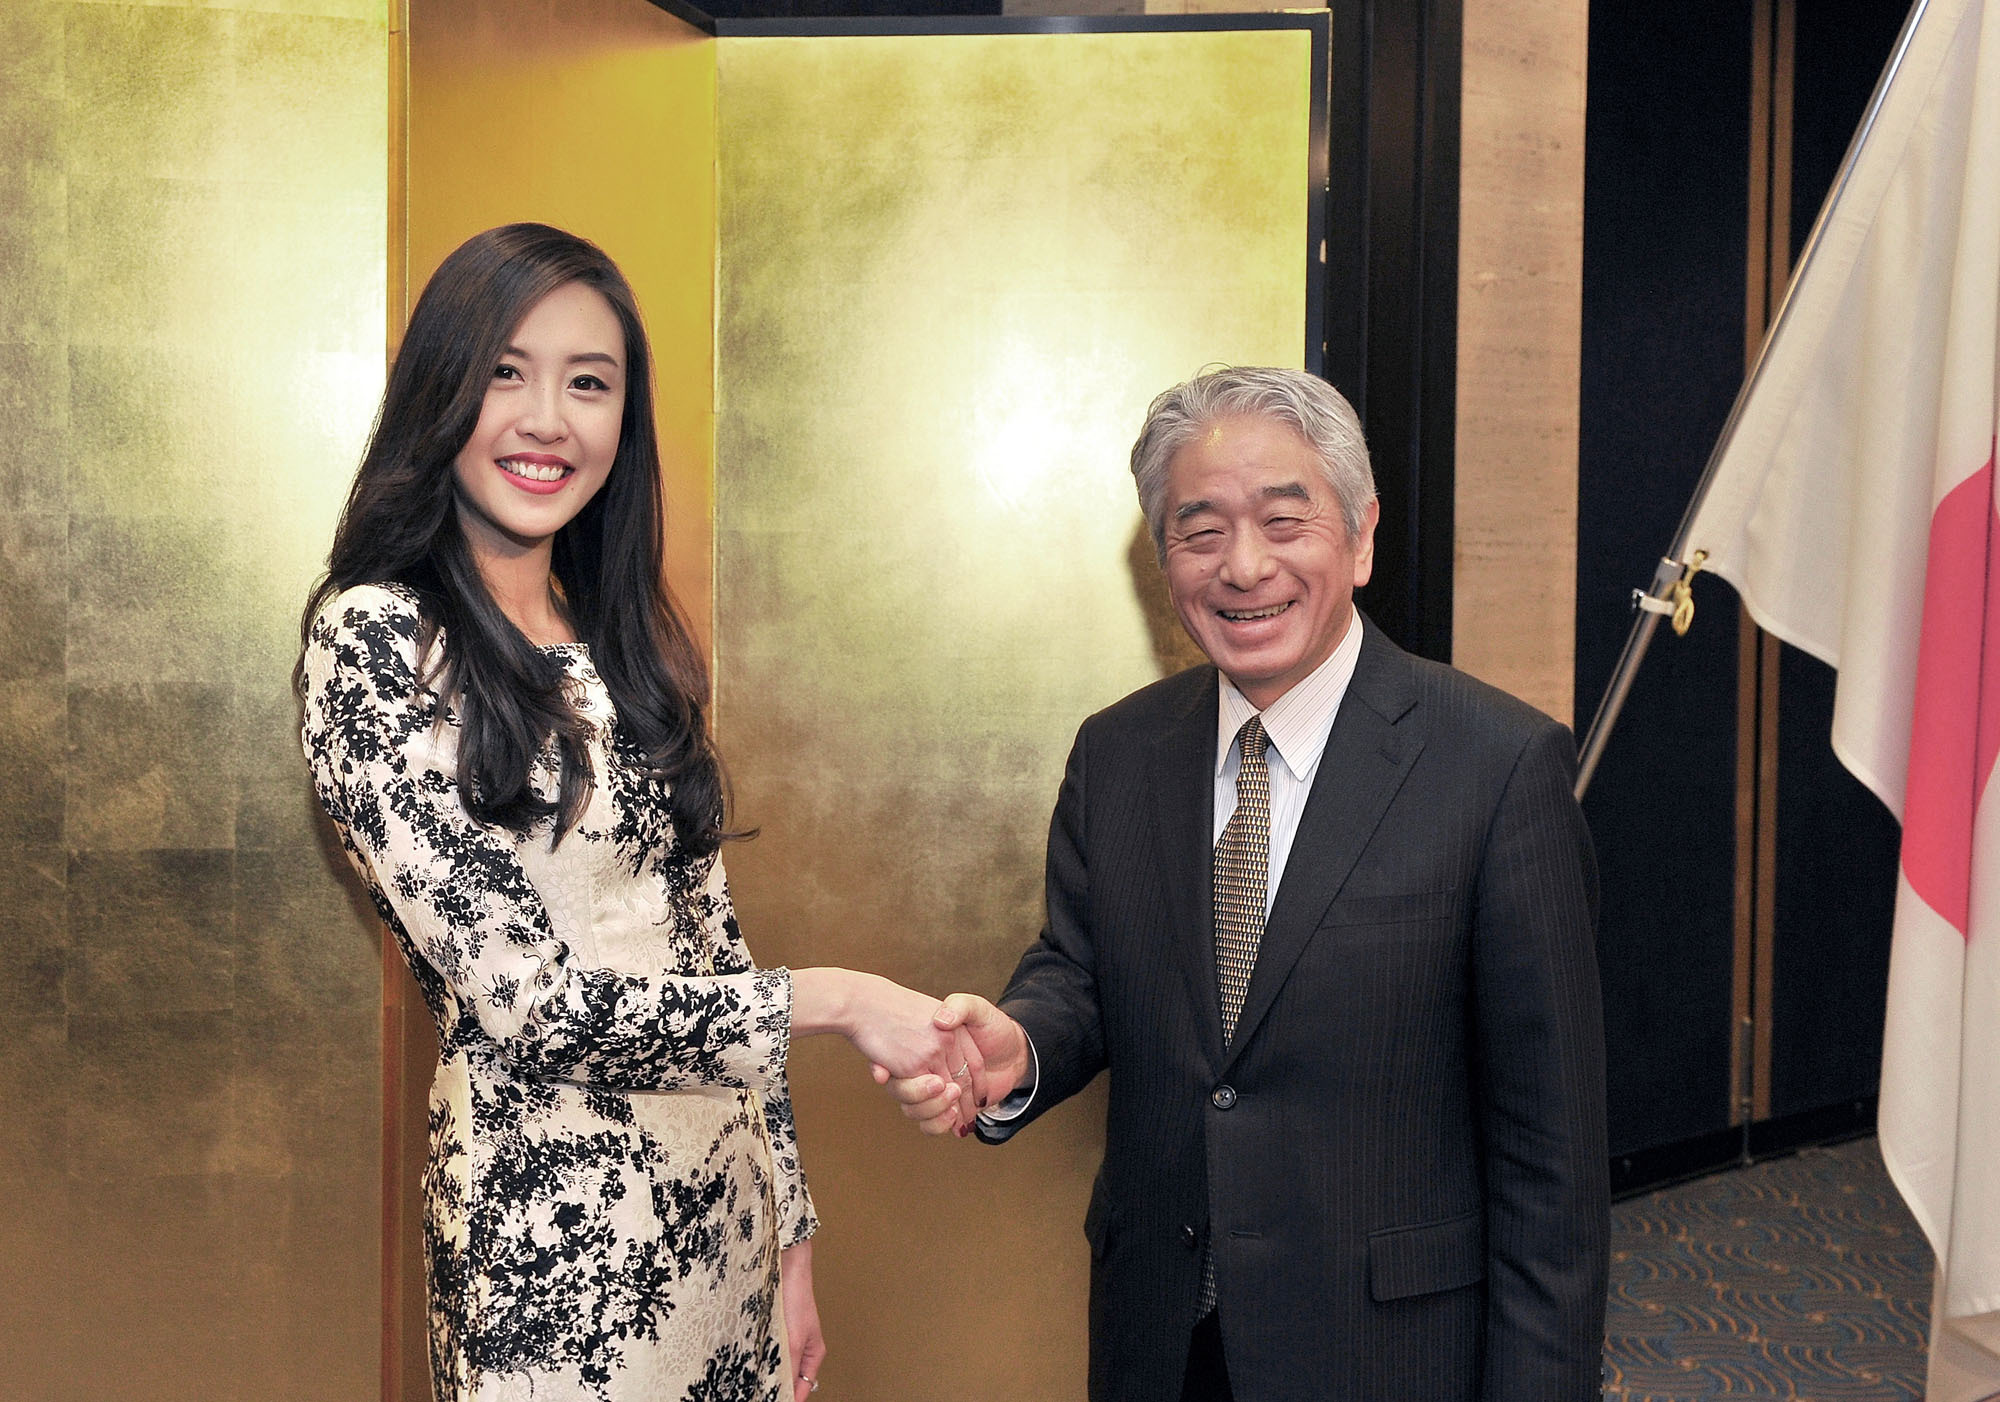 Brunei's Charge d'Affaires a.i. Jessica Tiah (left), welcomes Secretary General of the Asean-Japan Centre Masataka Fujita during a reception to celebrate the country's 33rd national day anniversary at the Hotel New Otani, Tokyo on March 3. | YOSHIAKI MIURA